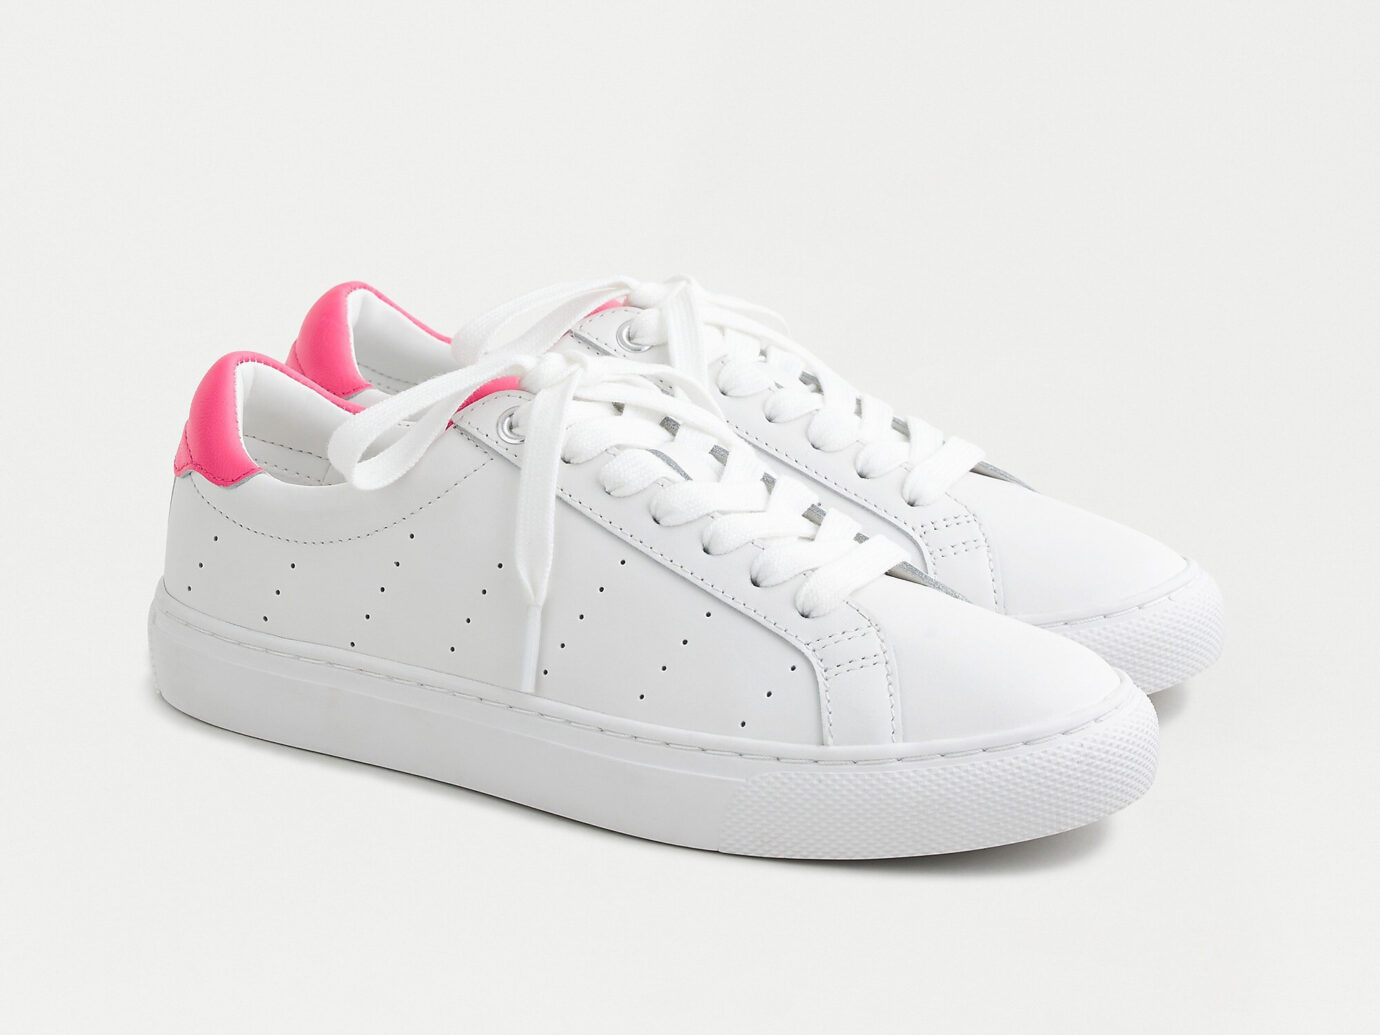 J.Crew Saturday Sneakers with Fuchsia Detail